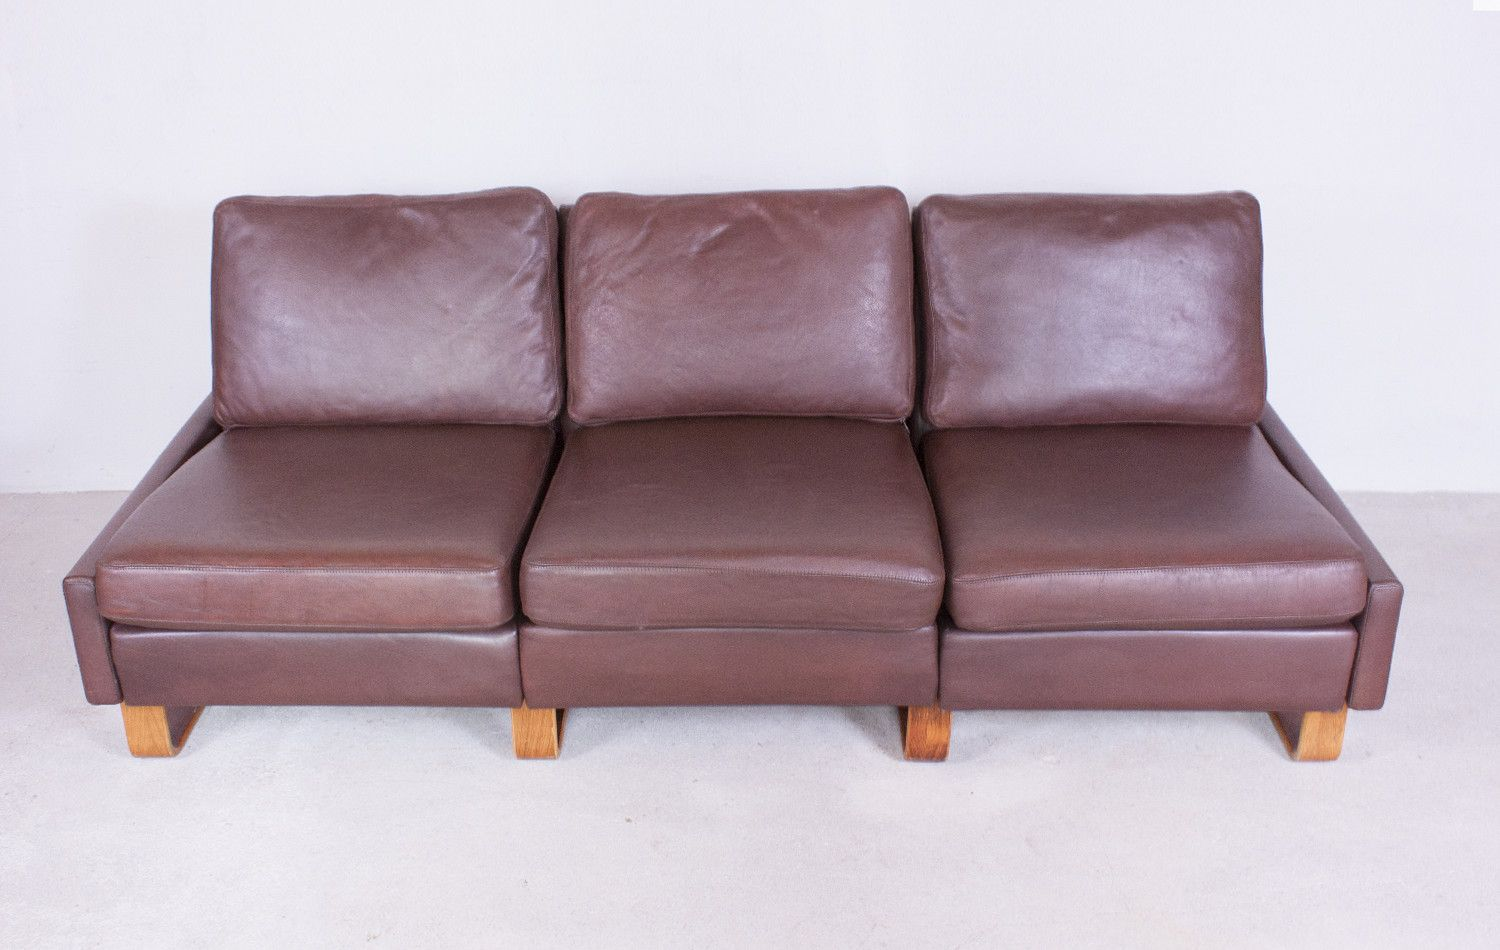 conseta sofa by f w m ller for cor for sale at pamono. Black Bedroom Furniture Sets. Home Design Ideas